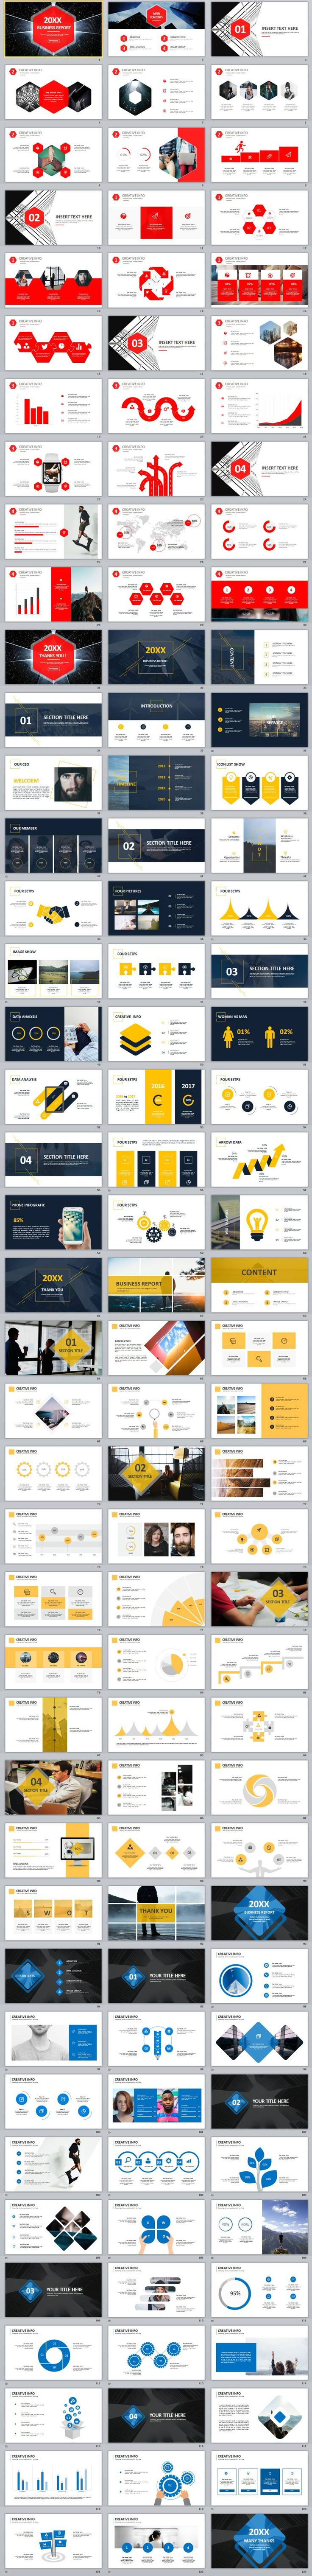 The 25 best powerpoint background design ideas on pinterest ppt 4 in 1 company year cool introduction powerpoint template powerpoint templates presentation animation backgrounds pptwork annual report toneelgroepblik Gallery